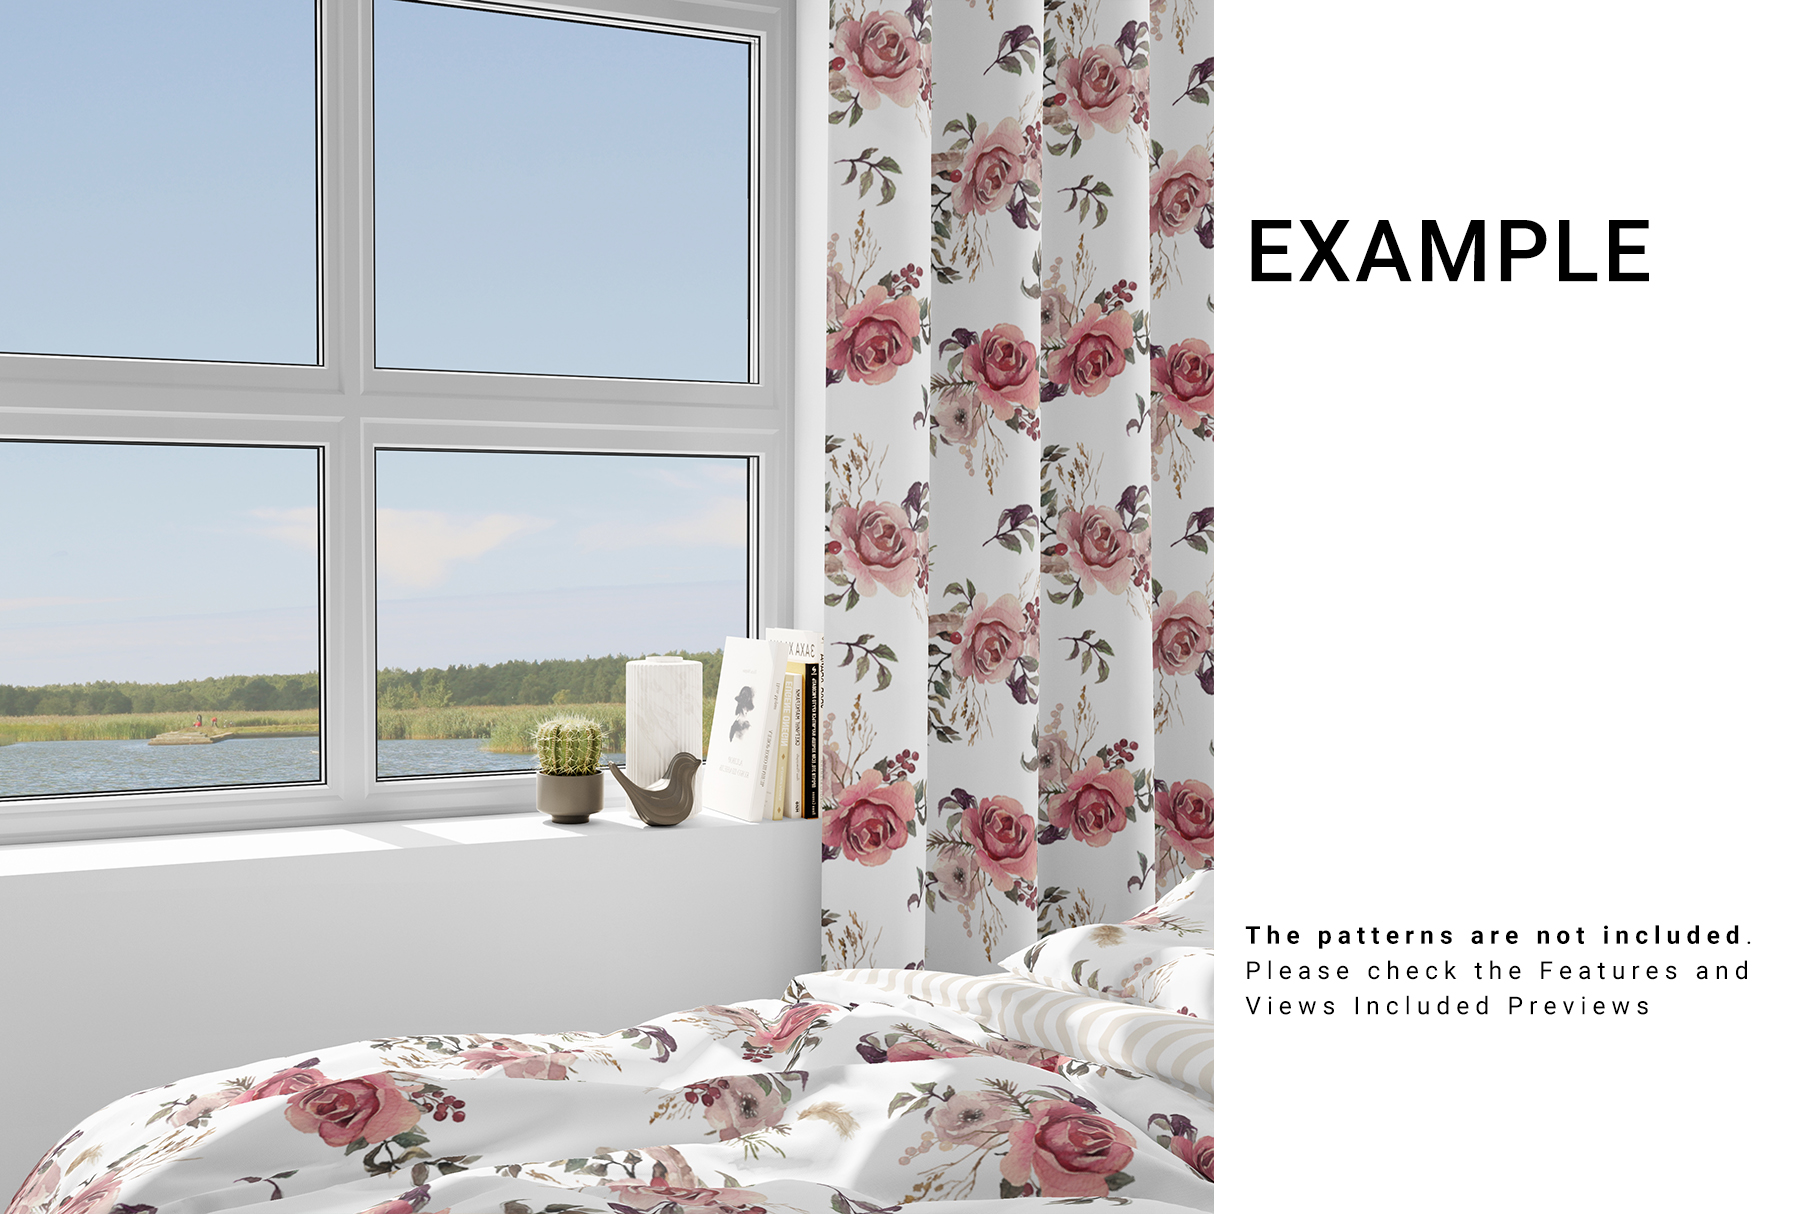 Home Textile - Bed Set and Curtain 3D Mockup